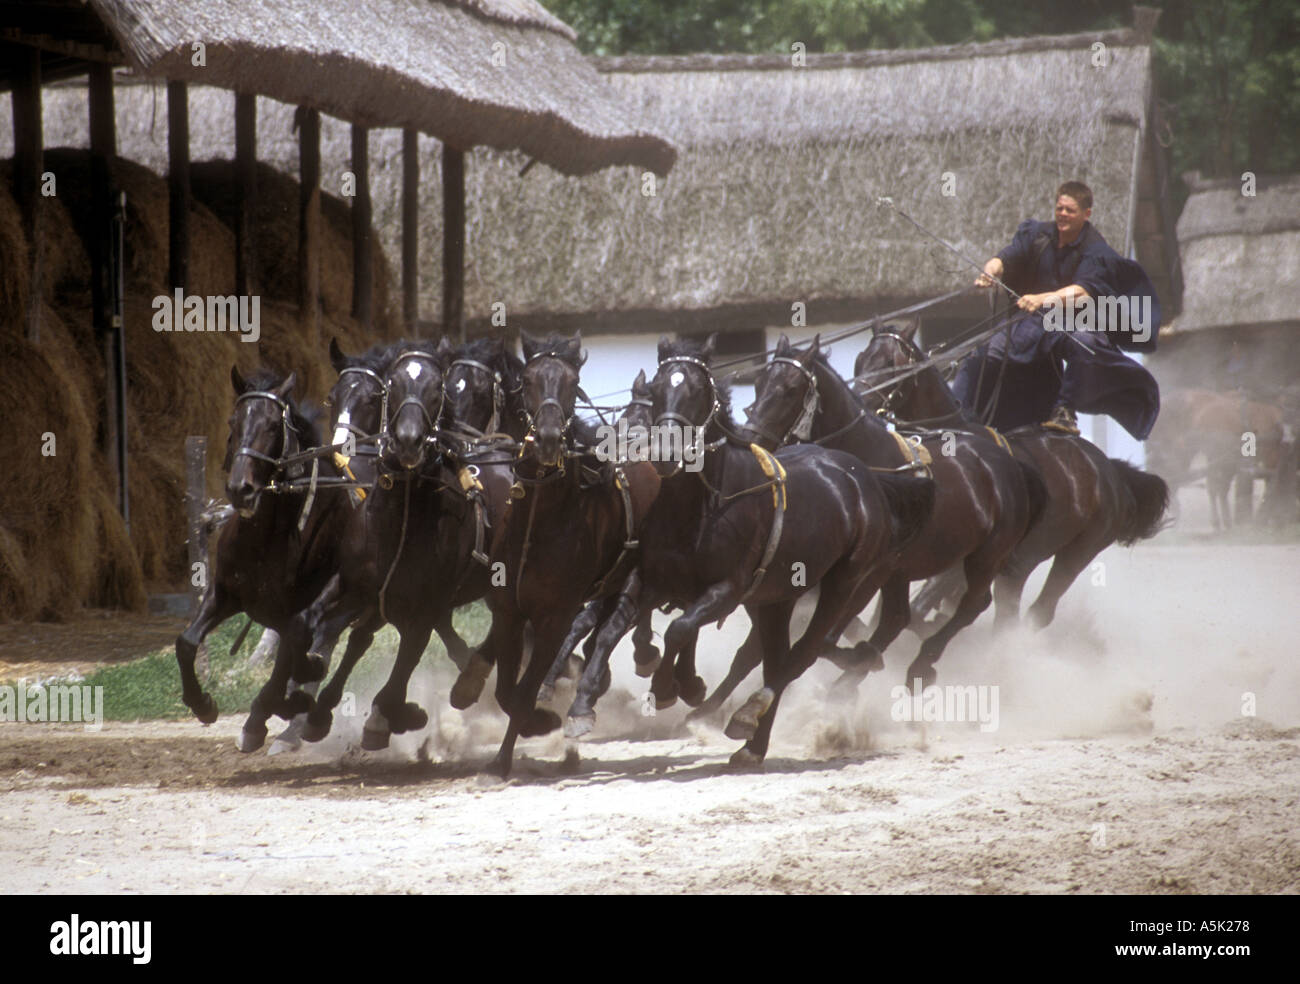 Riding ten horses at a time - Stock Image